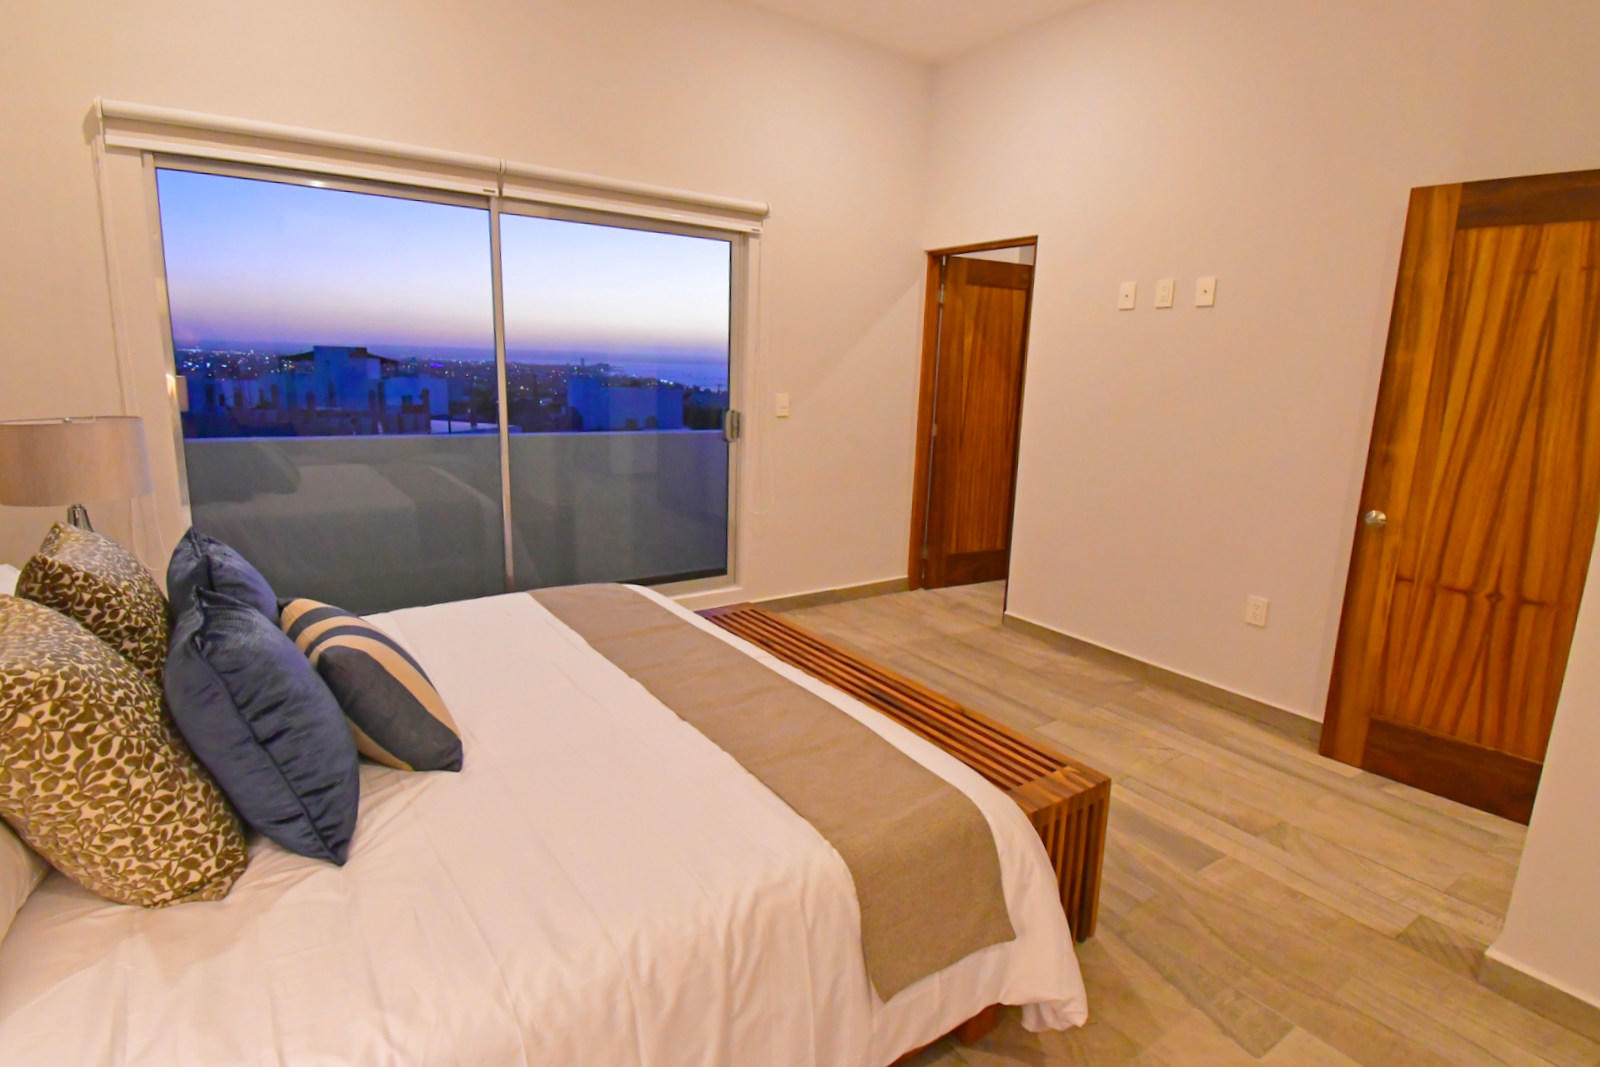 La Paz, 3 Bedrooms Bedrooms, ,2 BathroomsBathrooms,House,For Sale,torres cantera residences,19-92